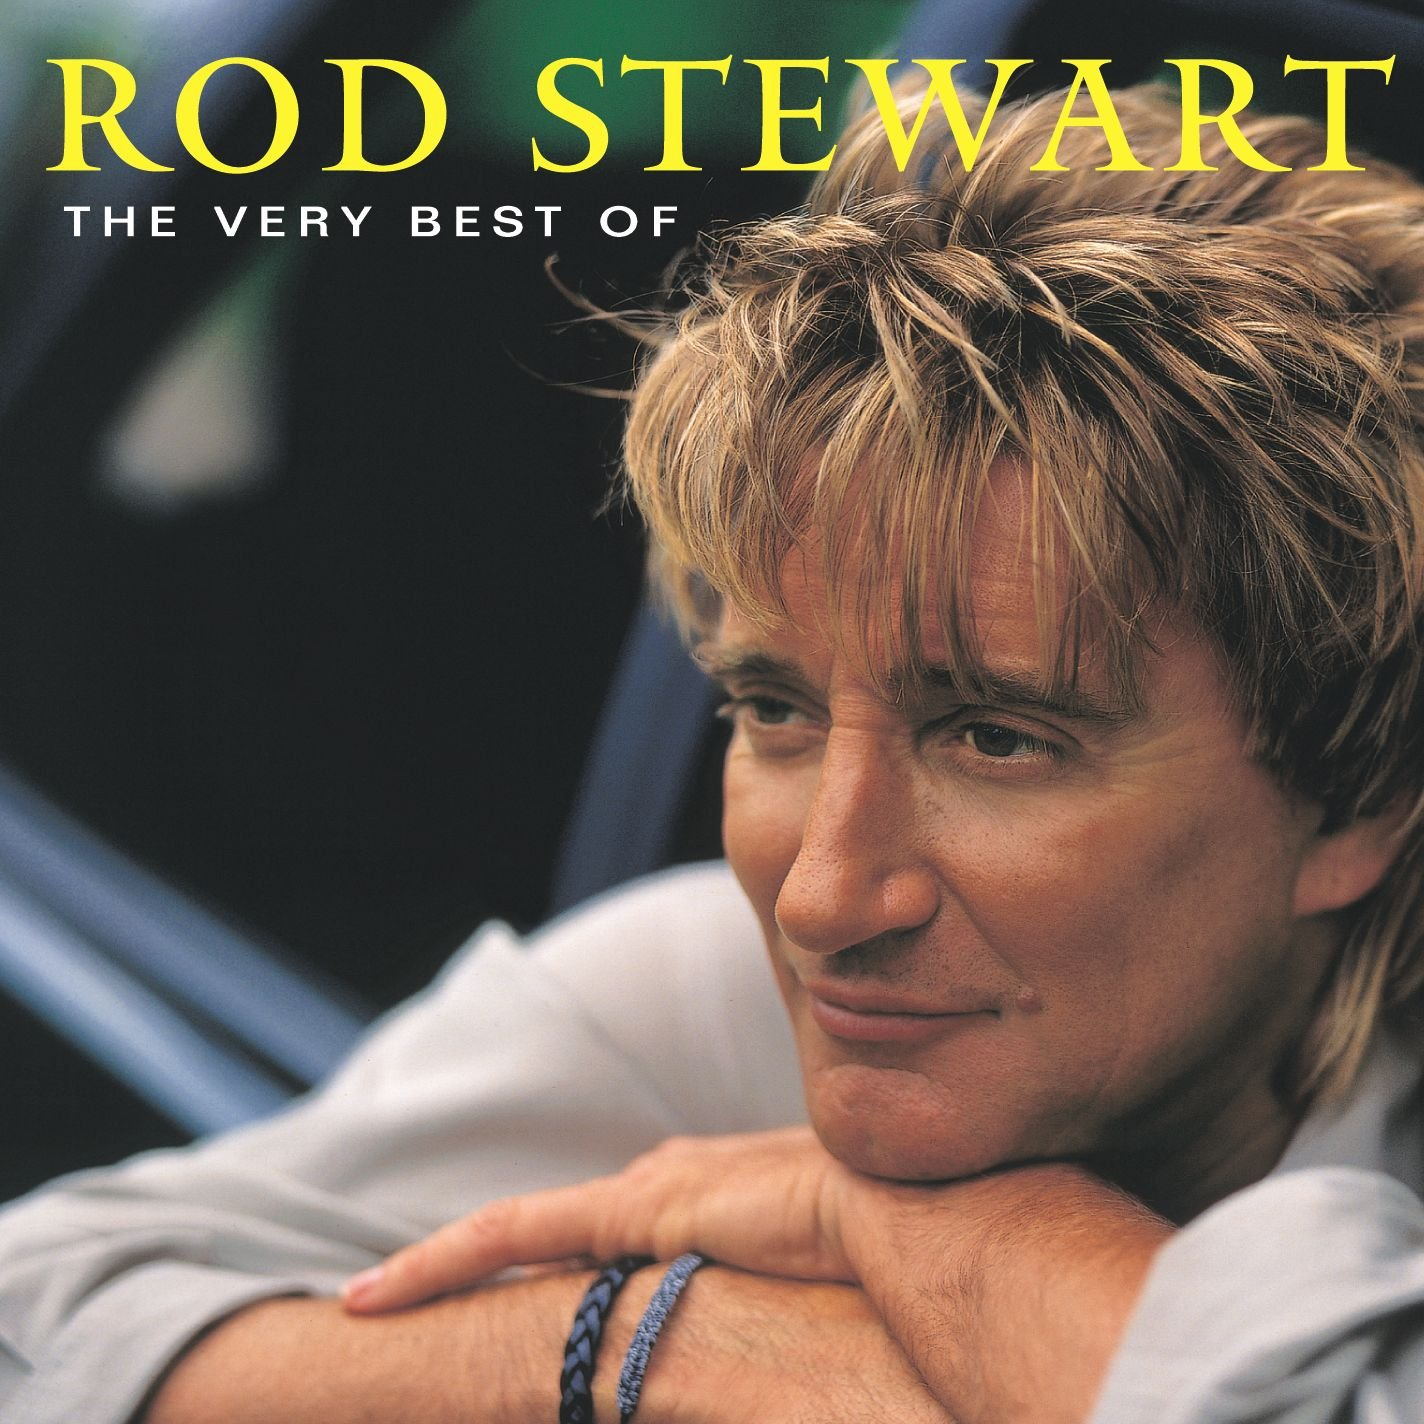 The Very Best of Rod Stewart by Warner Bros.